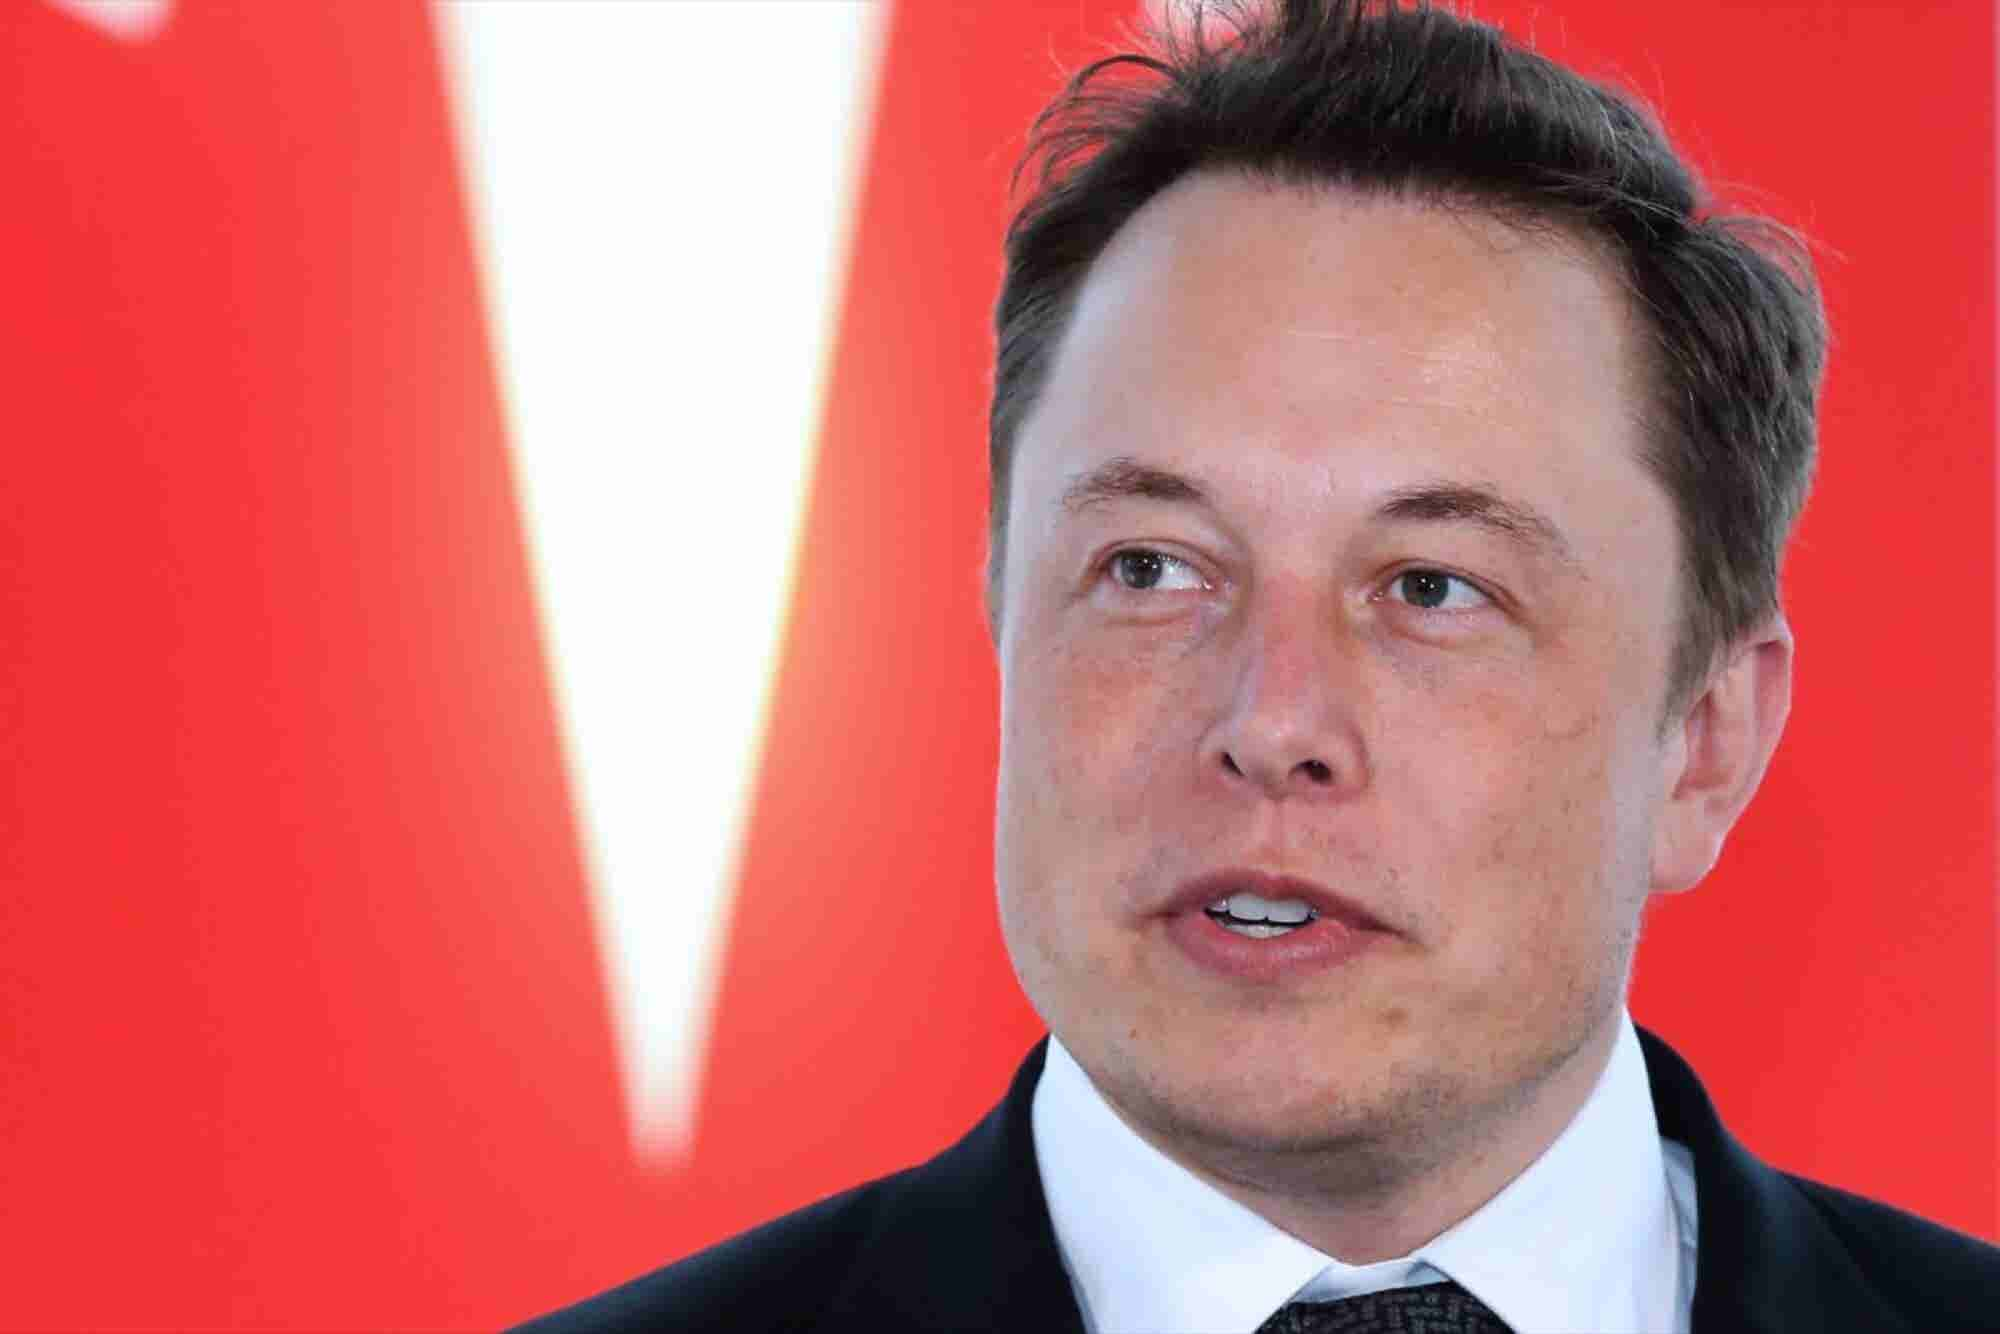 Elon Musk Announces a Tesla Hackathon Amidst Departure of Top Execs. 3 Things to Know Today.